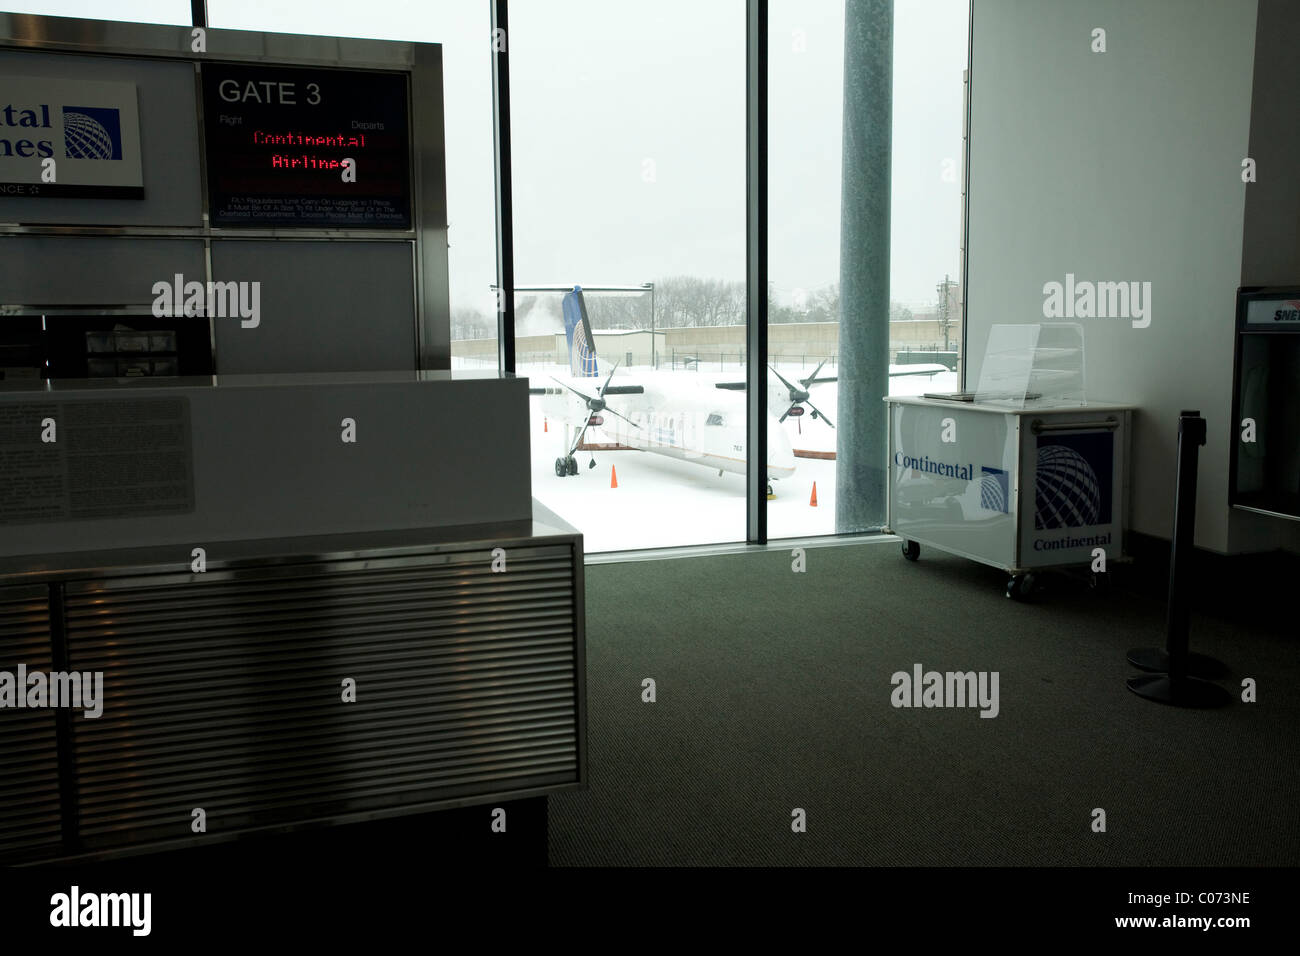 Continental Airlines gate remains empty during the shutdown of Bradley Airport during a major snowstorm. - Stock Image